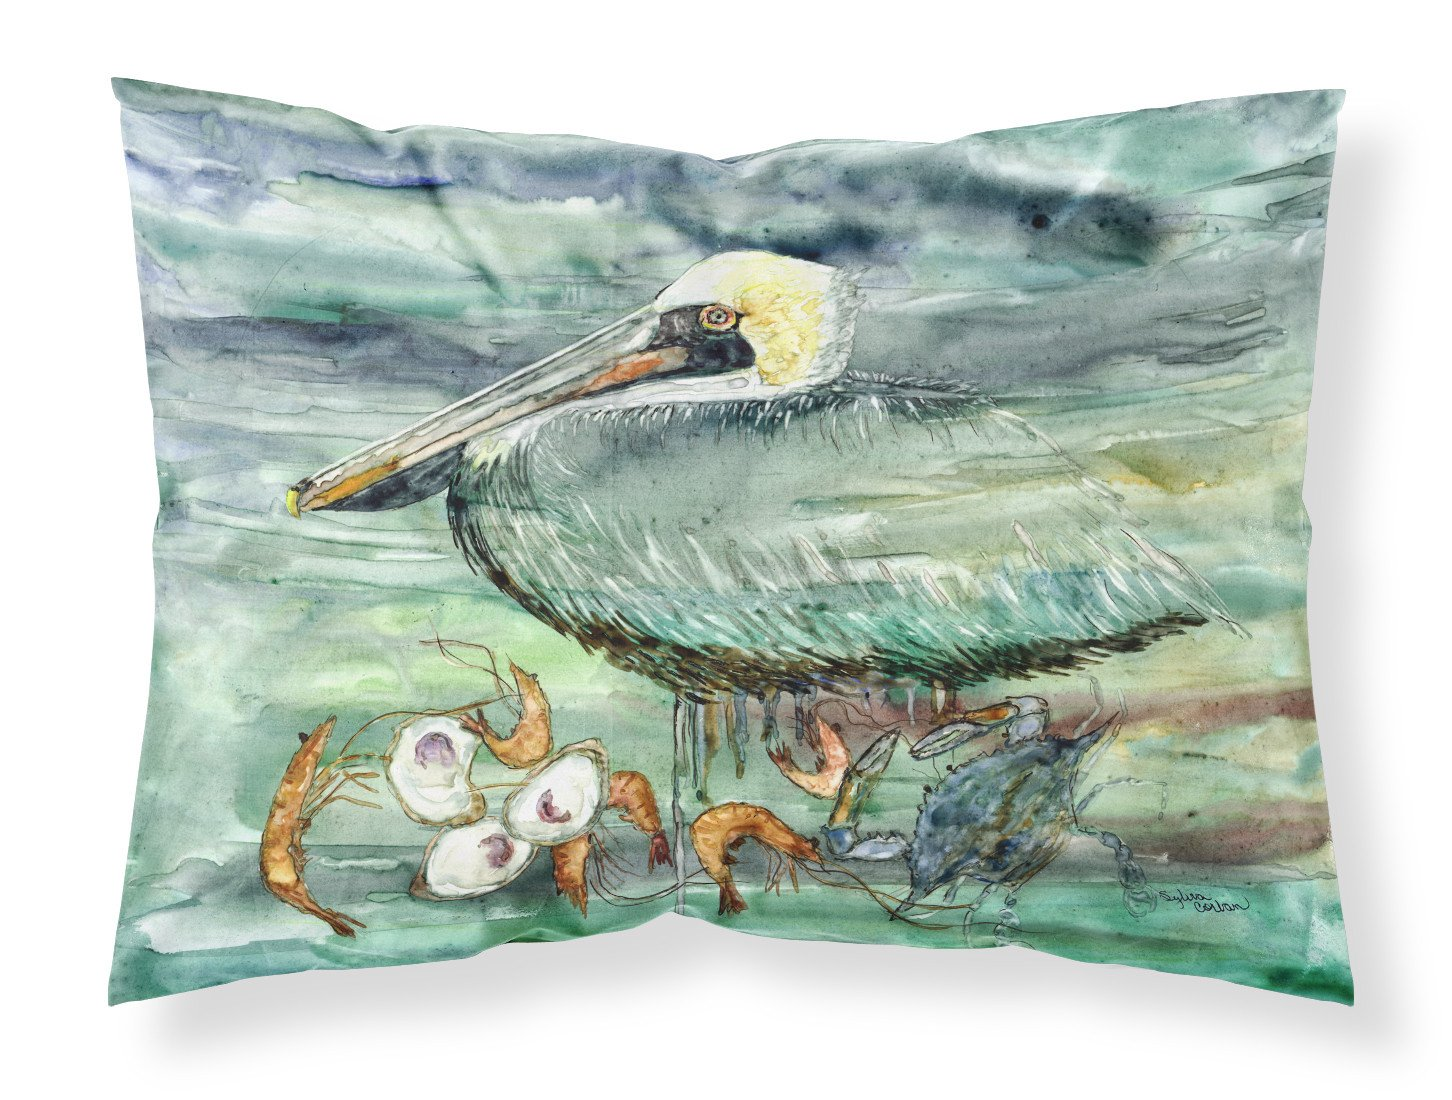 Watery Pelican, Shrimp, Crab and Oysters Fabric Standard Pillowcase 8978PILLOWCASE by Caroline's Treasures